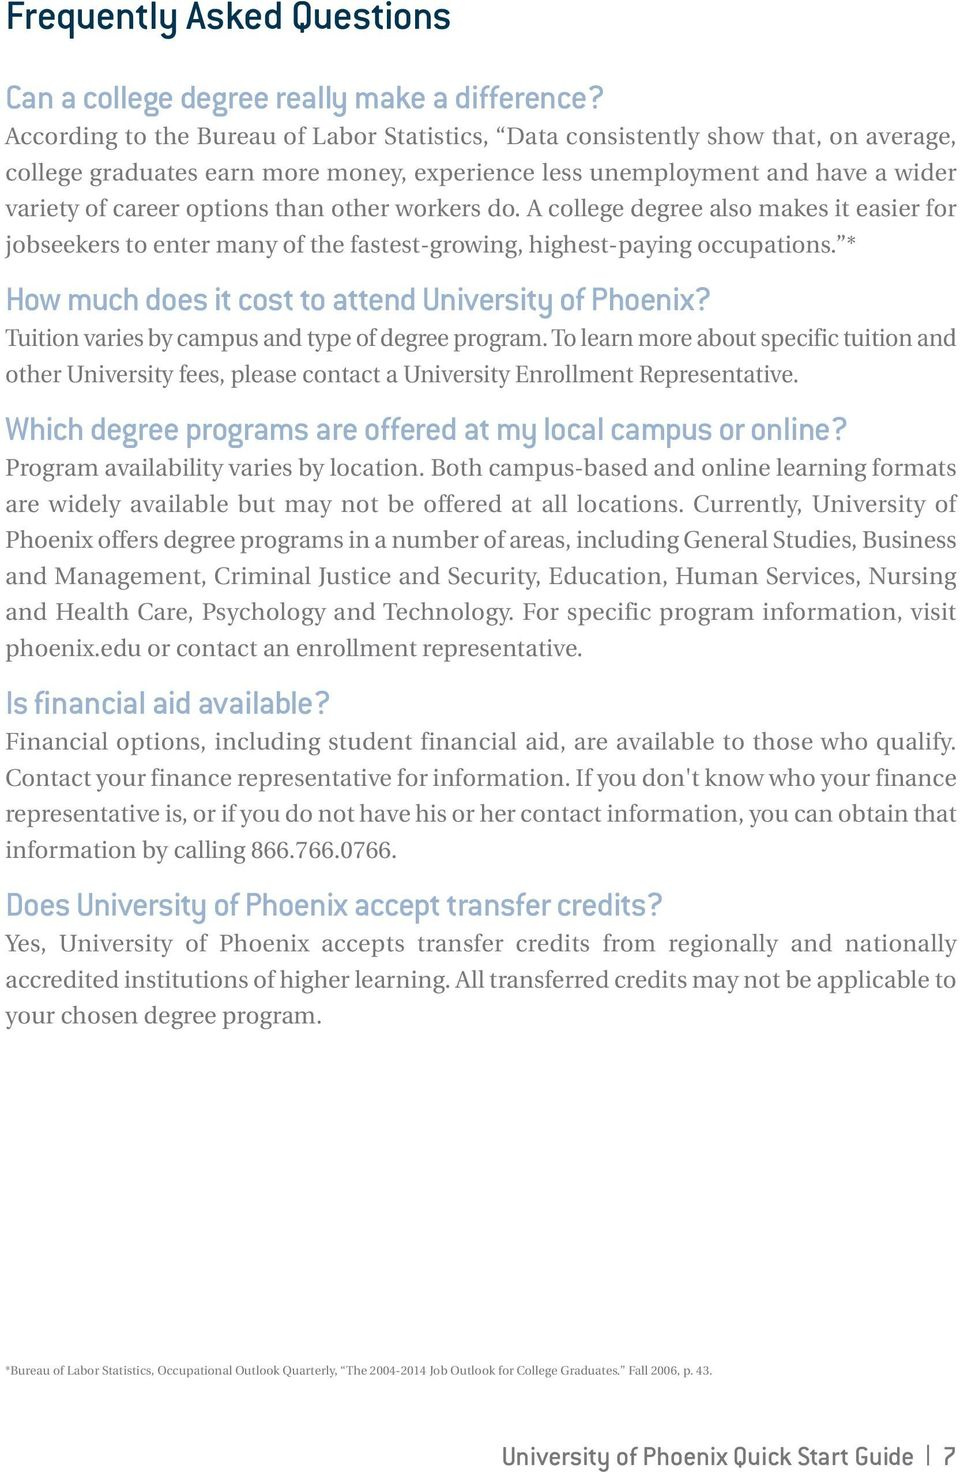 other workers do. A college degree also makes it easier for jobseekers to enter many of the fastest-growing, highest-paying occupations. * How much does it cost to attend University of Phoenix?